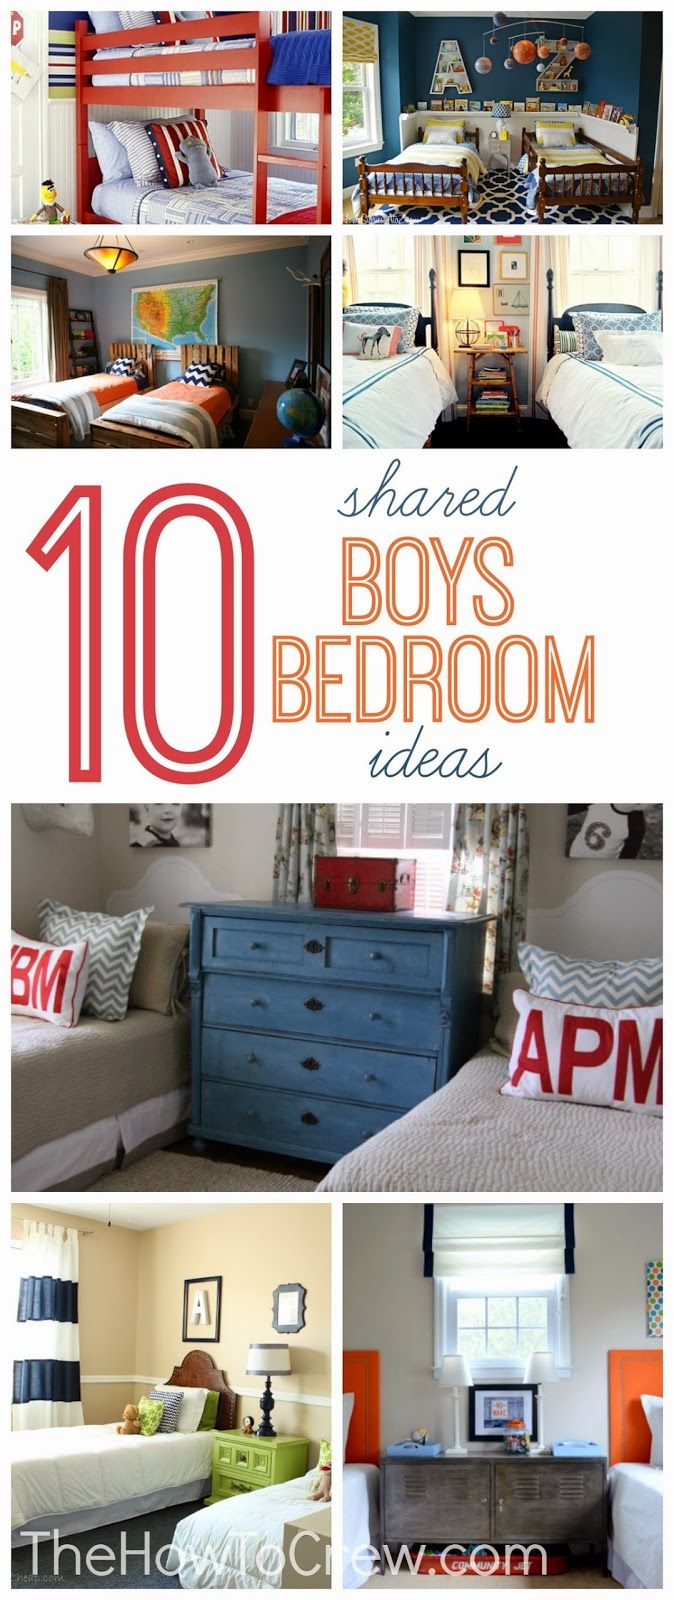 64 best kids bedrooms images on pinterest home bedroom ideas 10 cute shared boys bedroom ideas from thehowtocrew com so many great ideas to